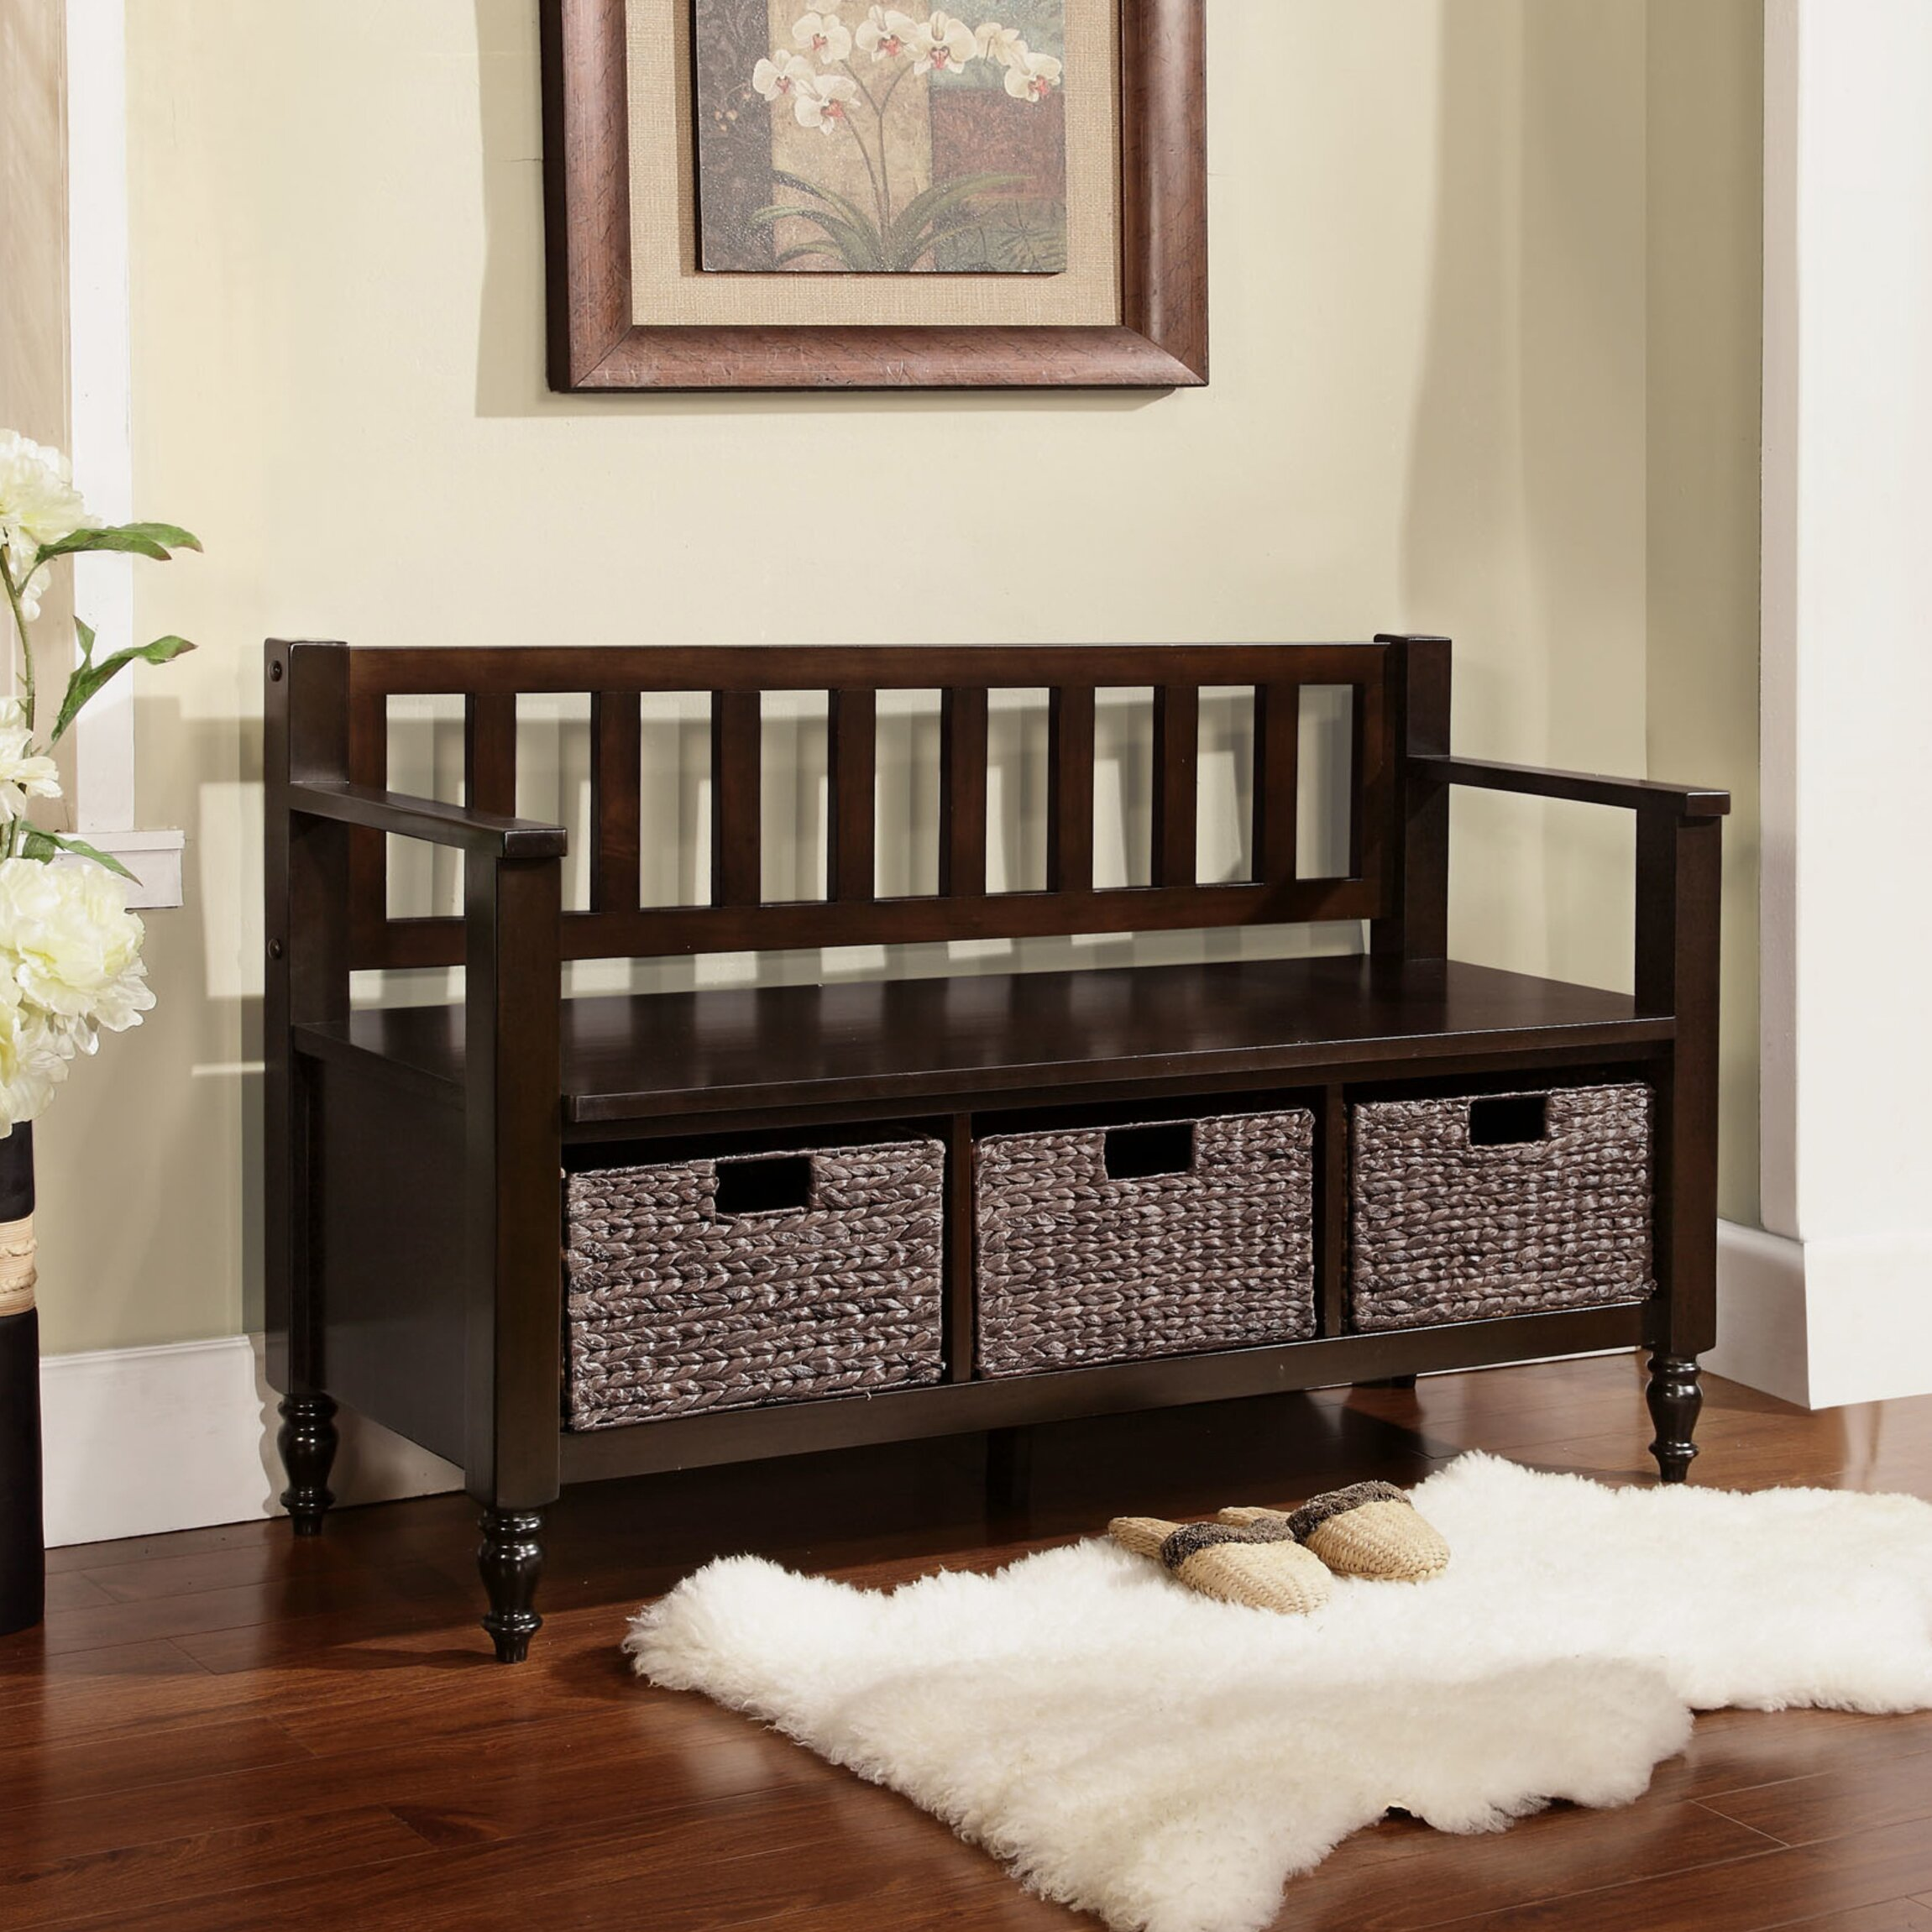 Foyer Seating : Simpli home dakota entryway bench reviews wayfair